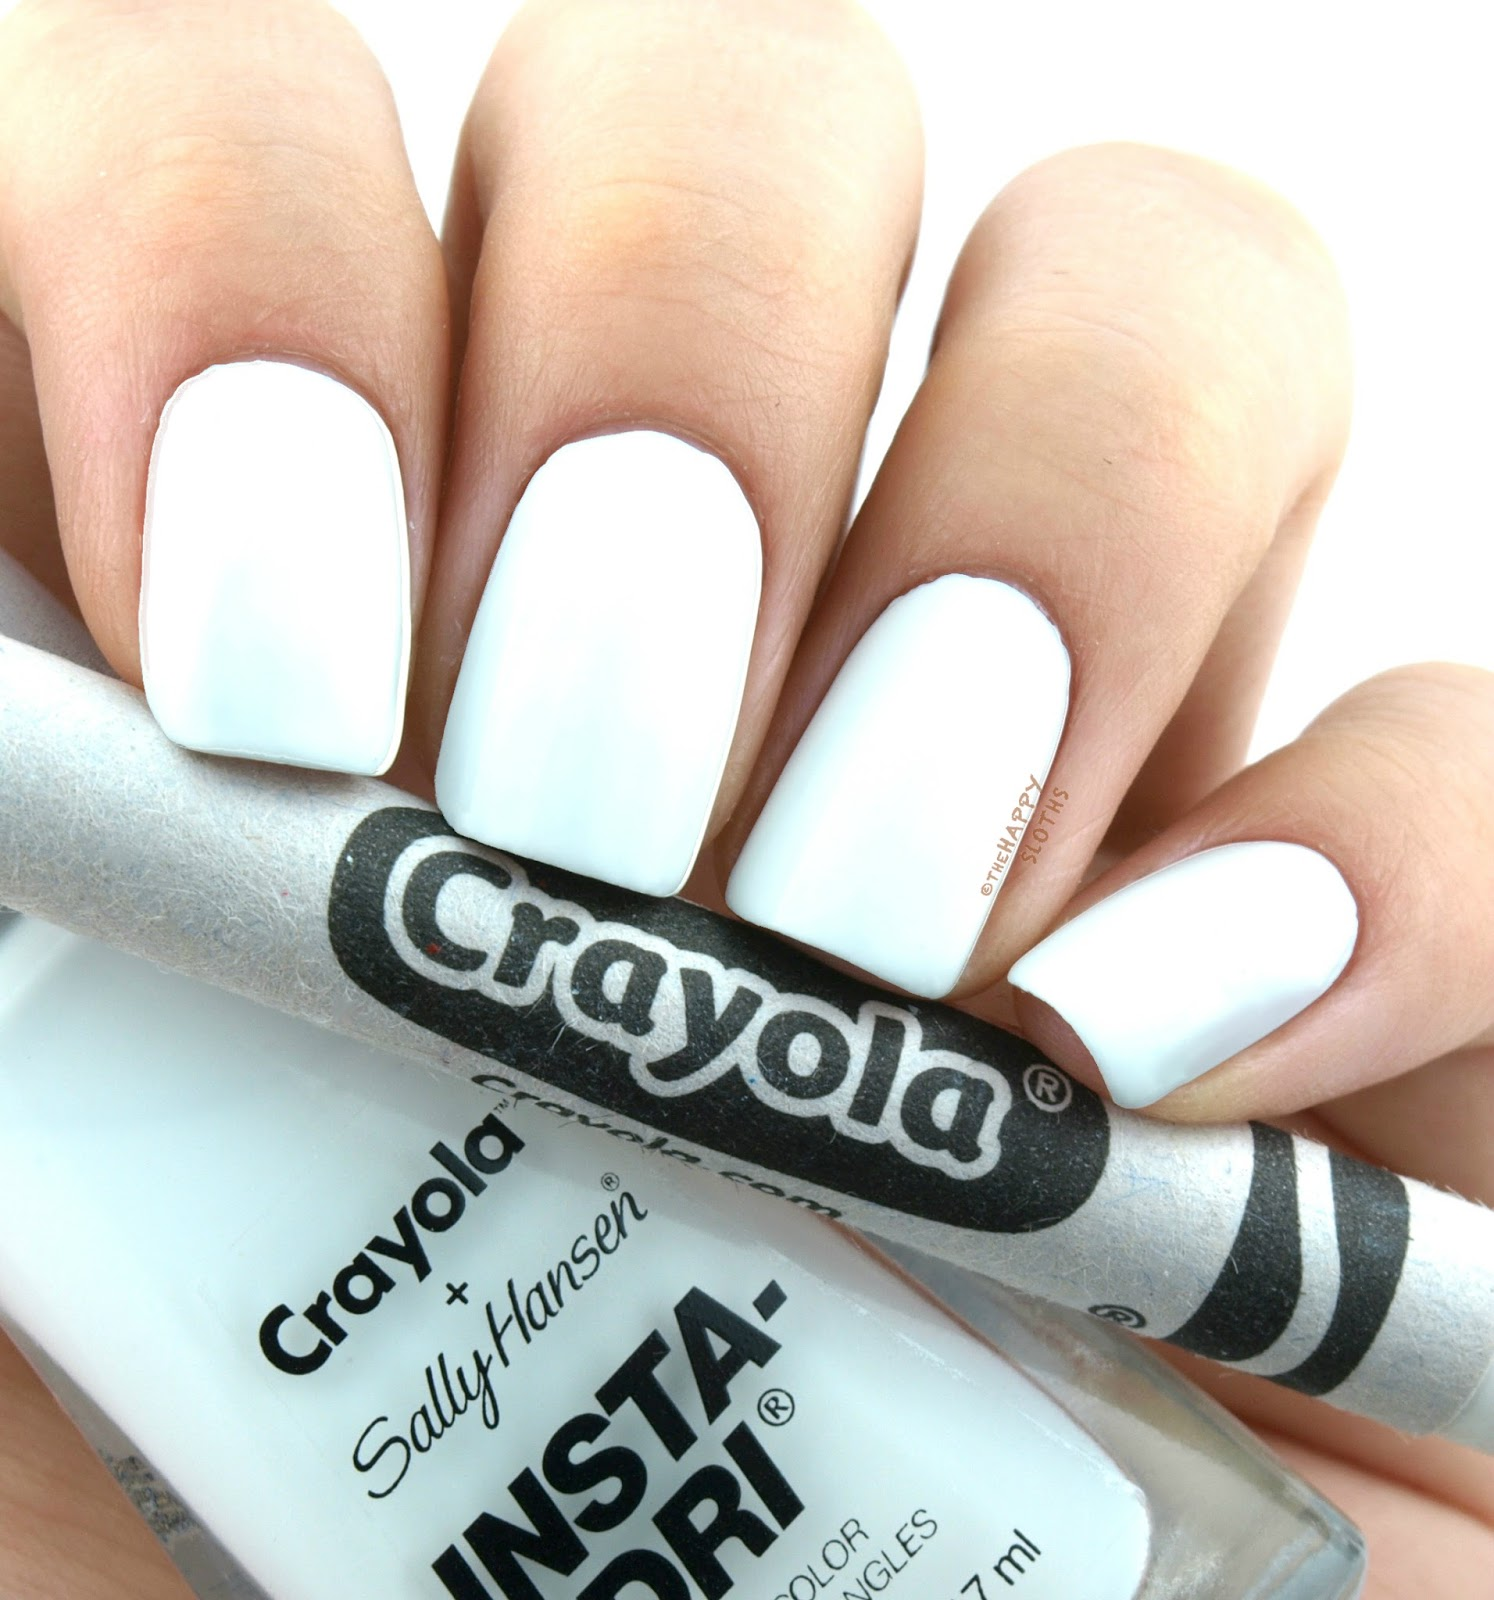 Sally Hansen + Crayola Collection | 509 White: Review and Swatches